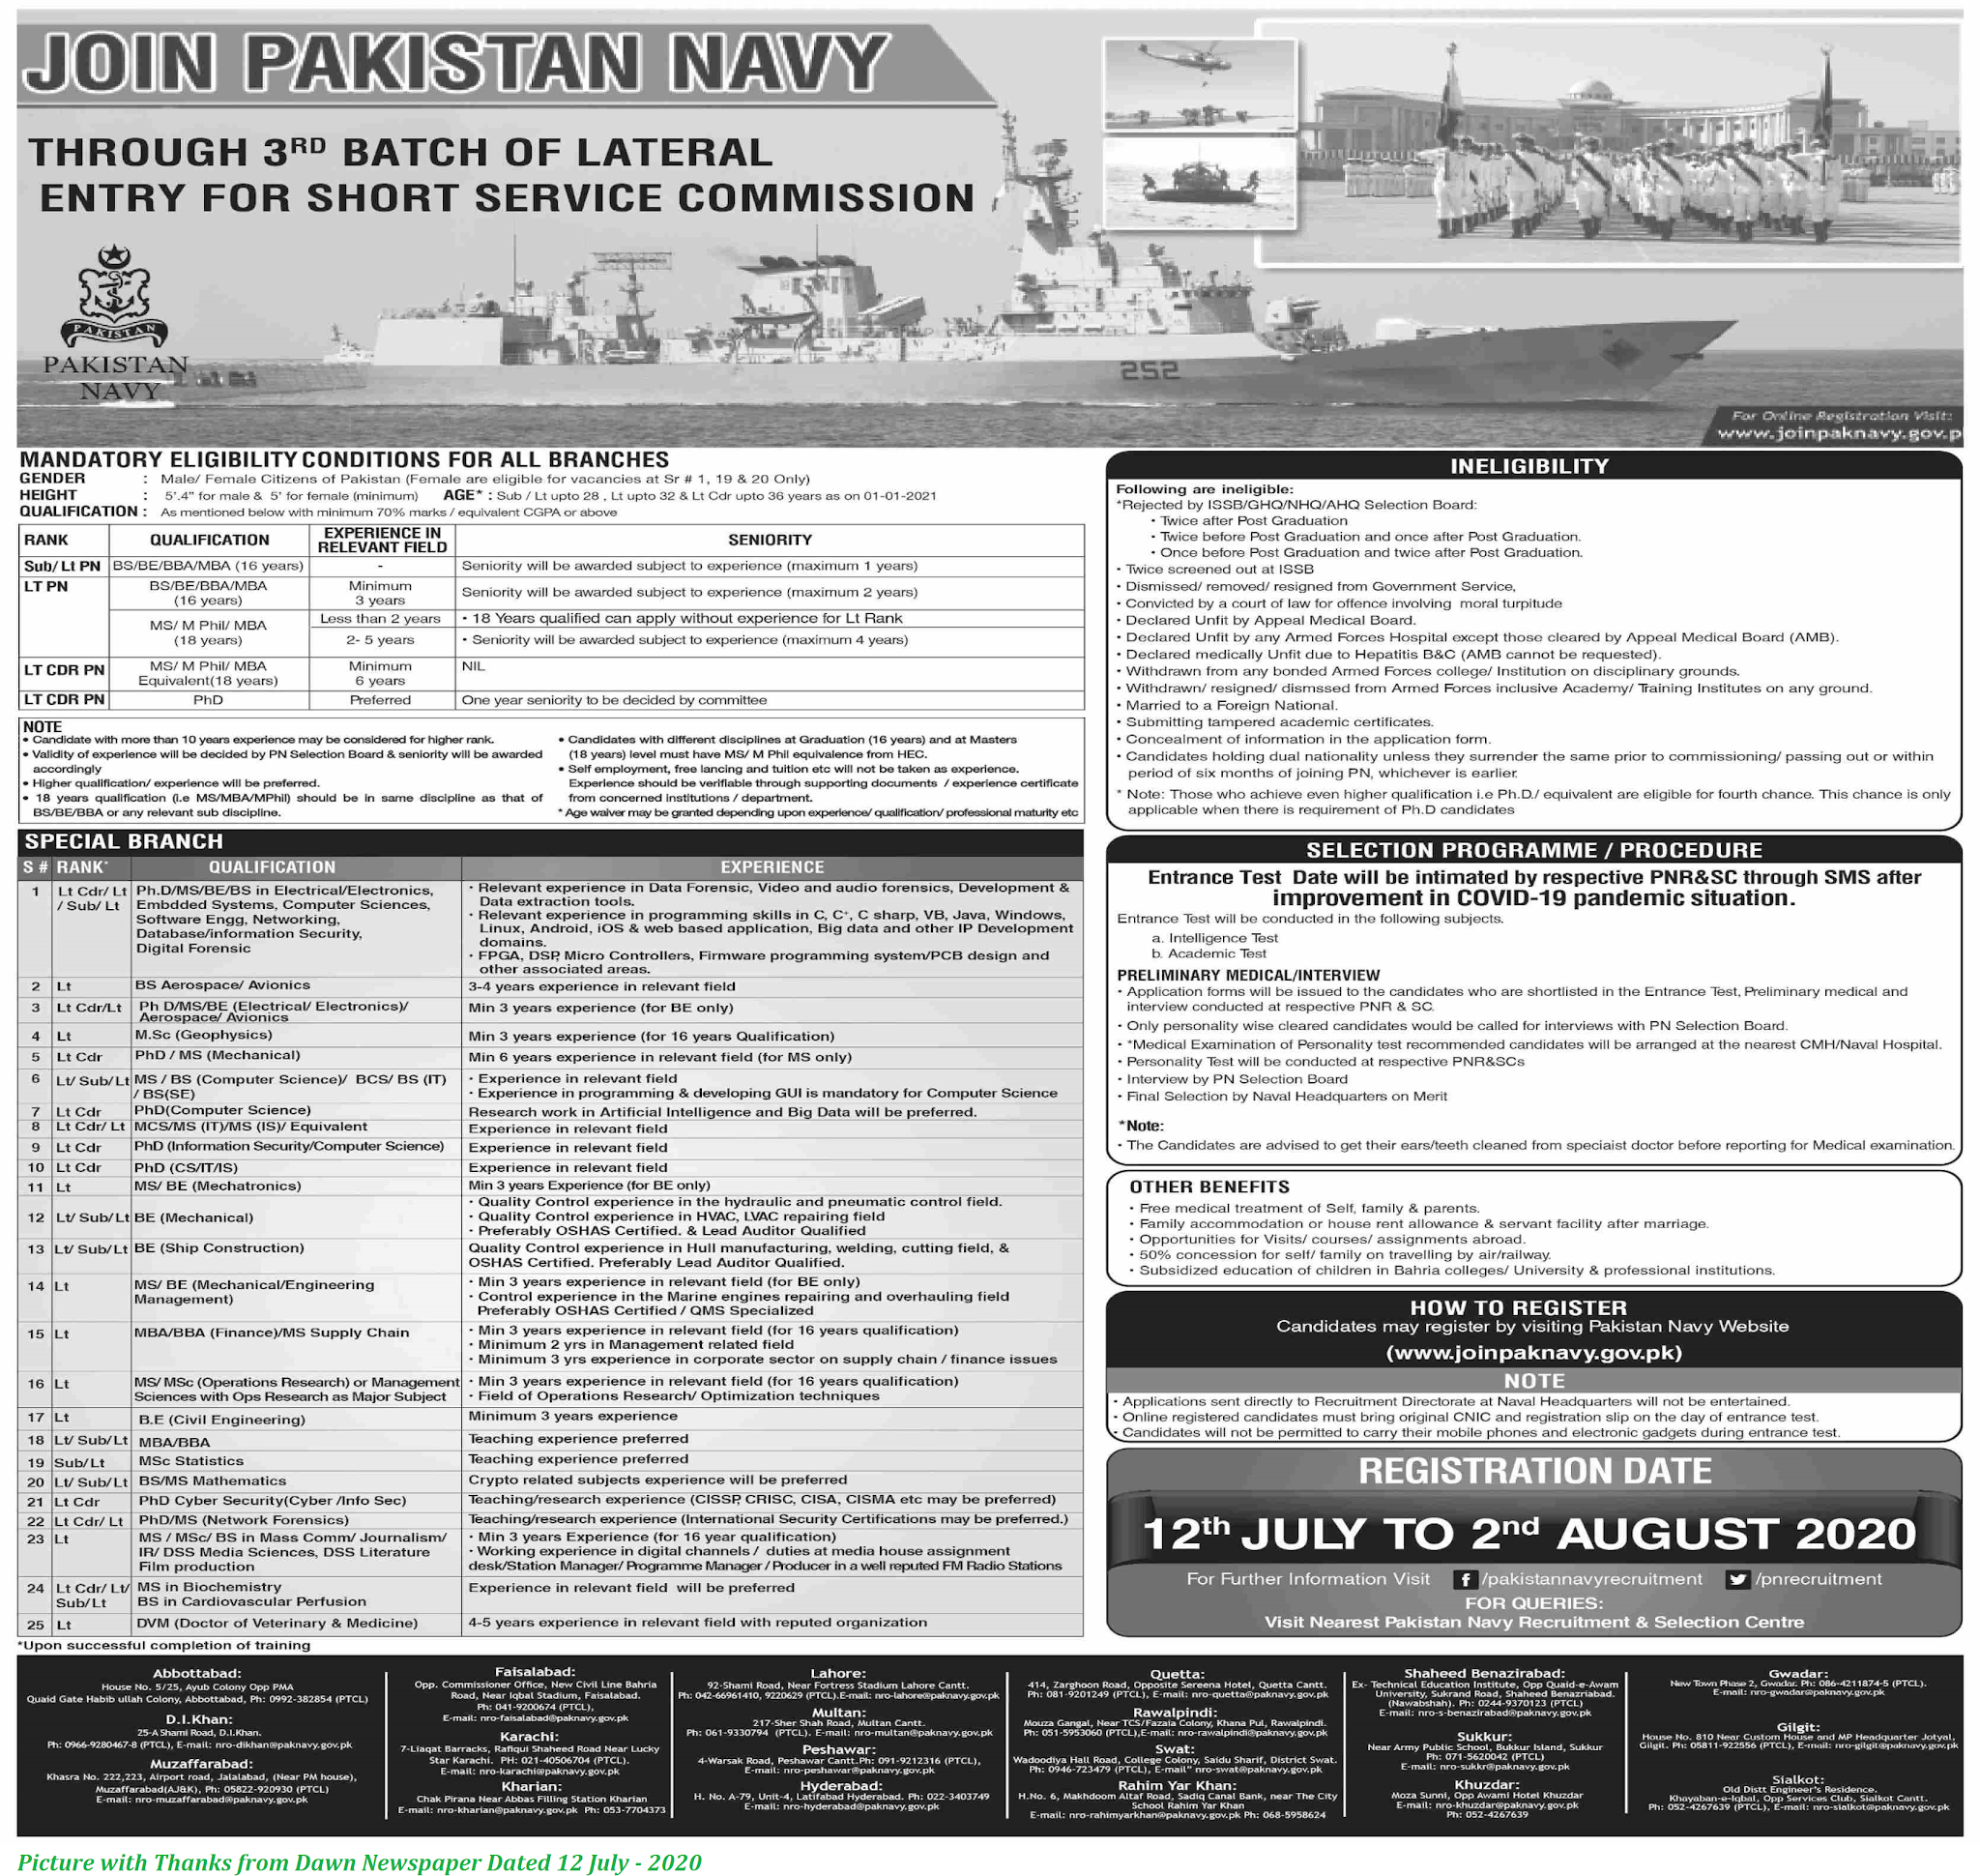 Join Pakistan Navy 2020 - 3rd Batch Entry Short Service Commission Course 2020 Pak Navy Jobs 2020 Online Registration